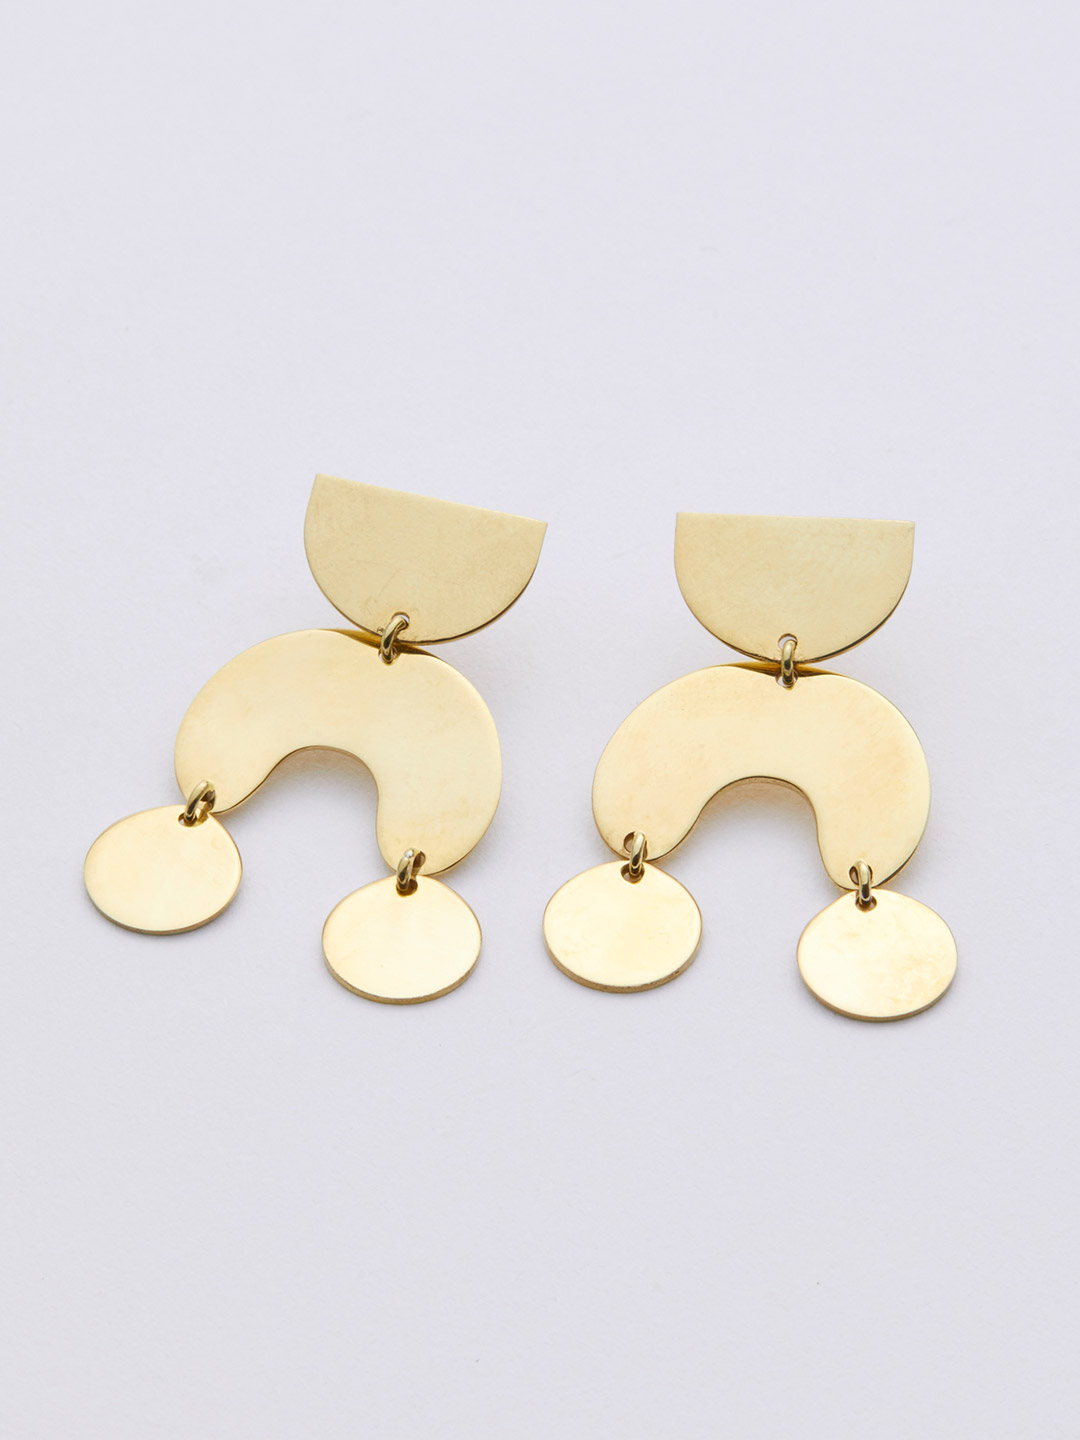 Teeny Tiny Moondancer Pierced Earring - Brass